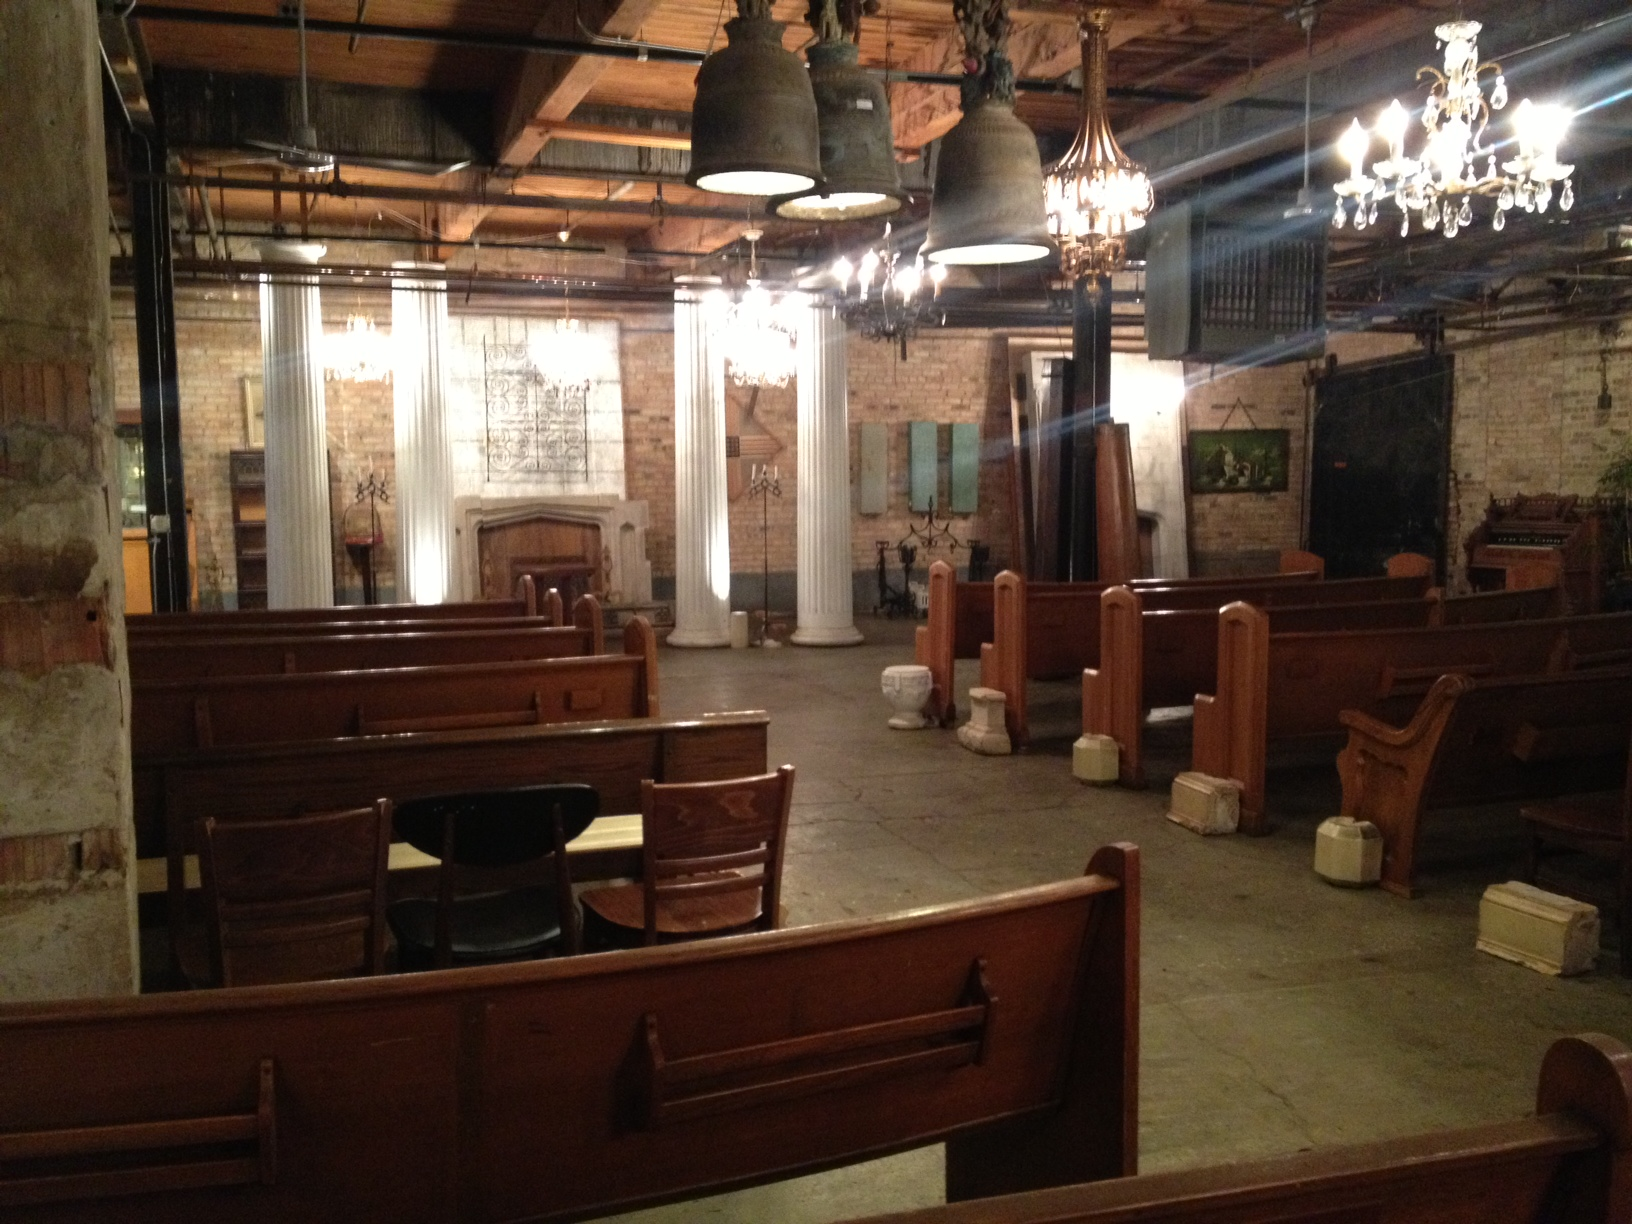 One of the potential wedding ceremony spaces in the building has super vintage pews and amazing chandeliers!